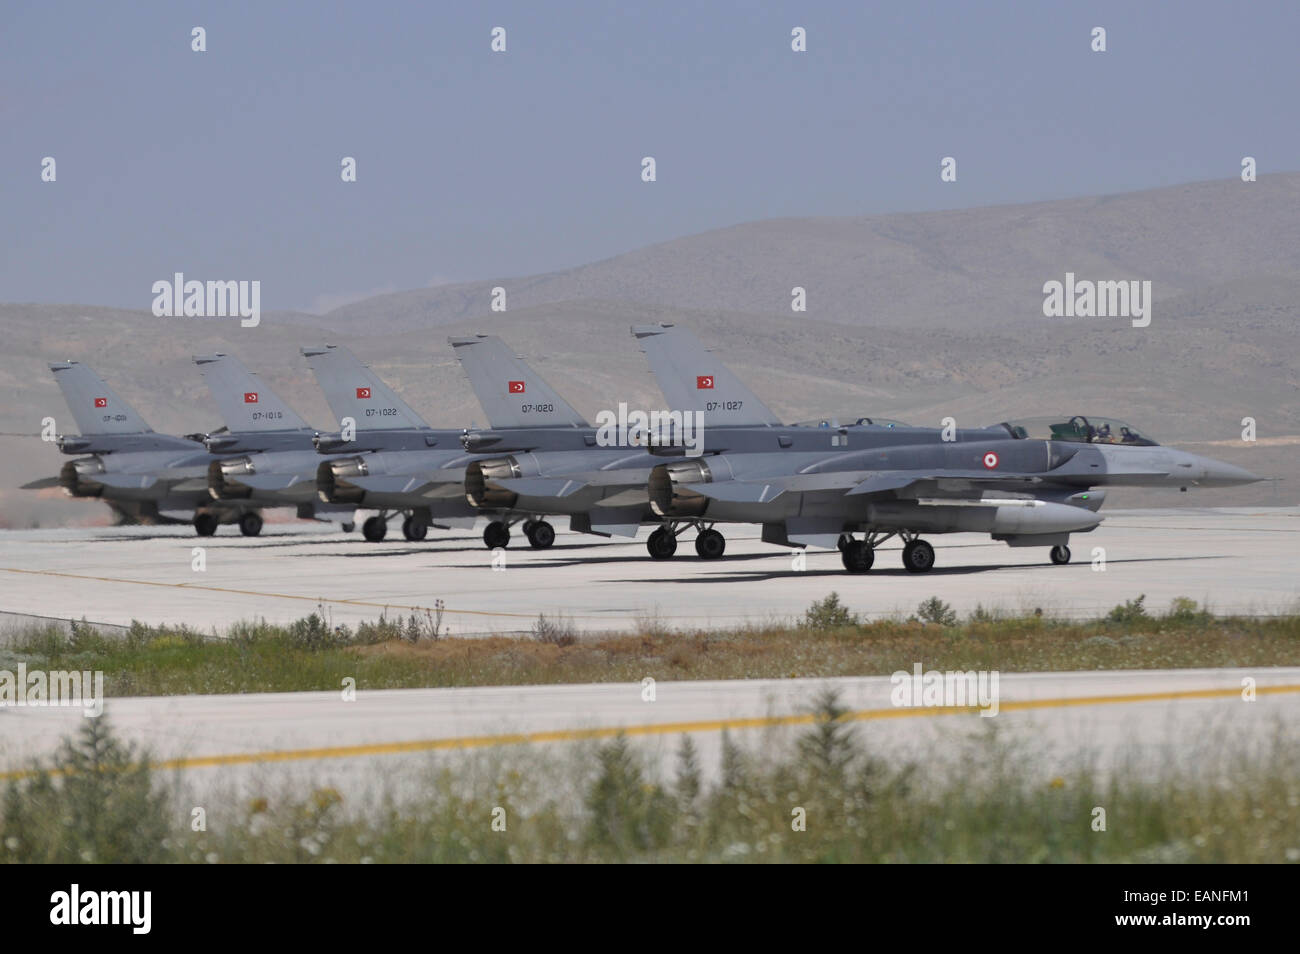 Turkish Air Force F-16C/D Block 52+ aircraft on standby at Konya Air Base, Turkey, during Exercise Anatolian Eagle - Stock Image